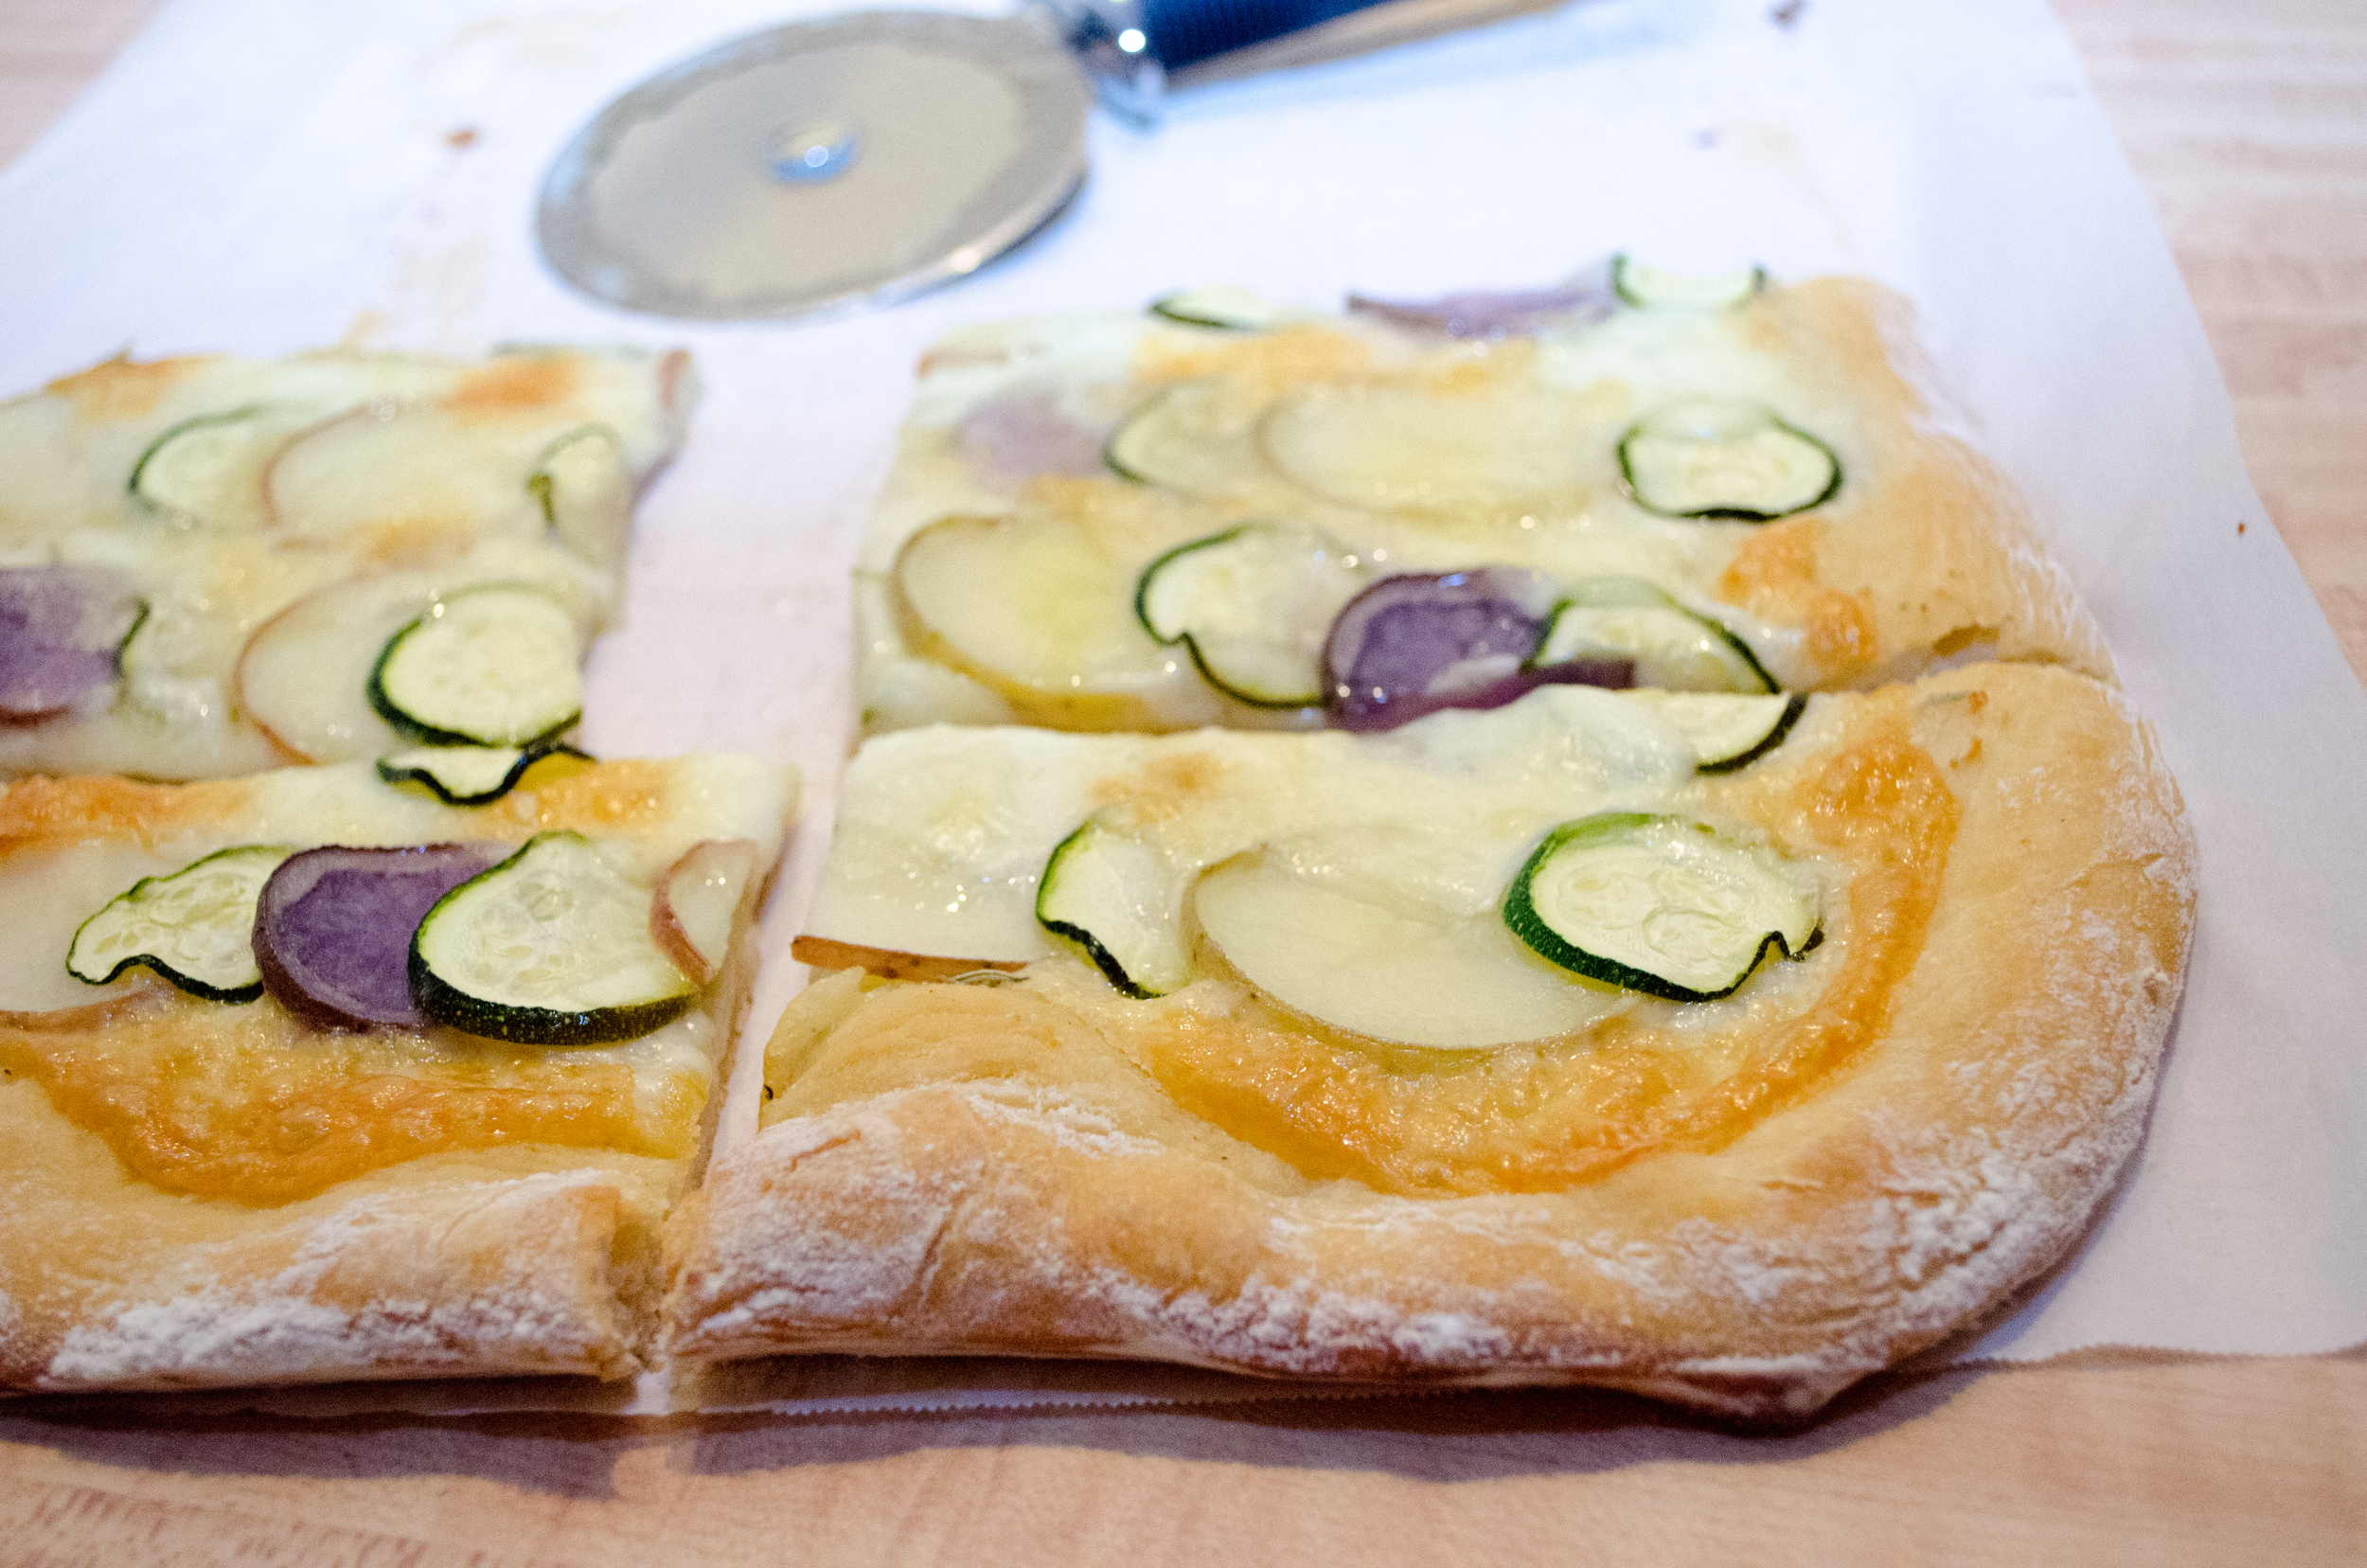 Zucchini and Potato Pizza with Garlic and Rosemary